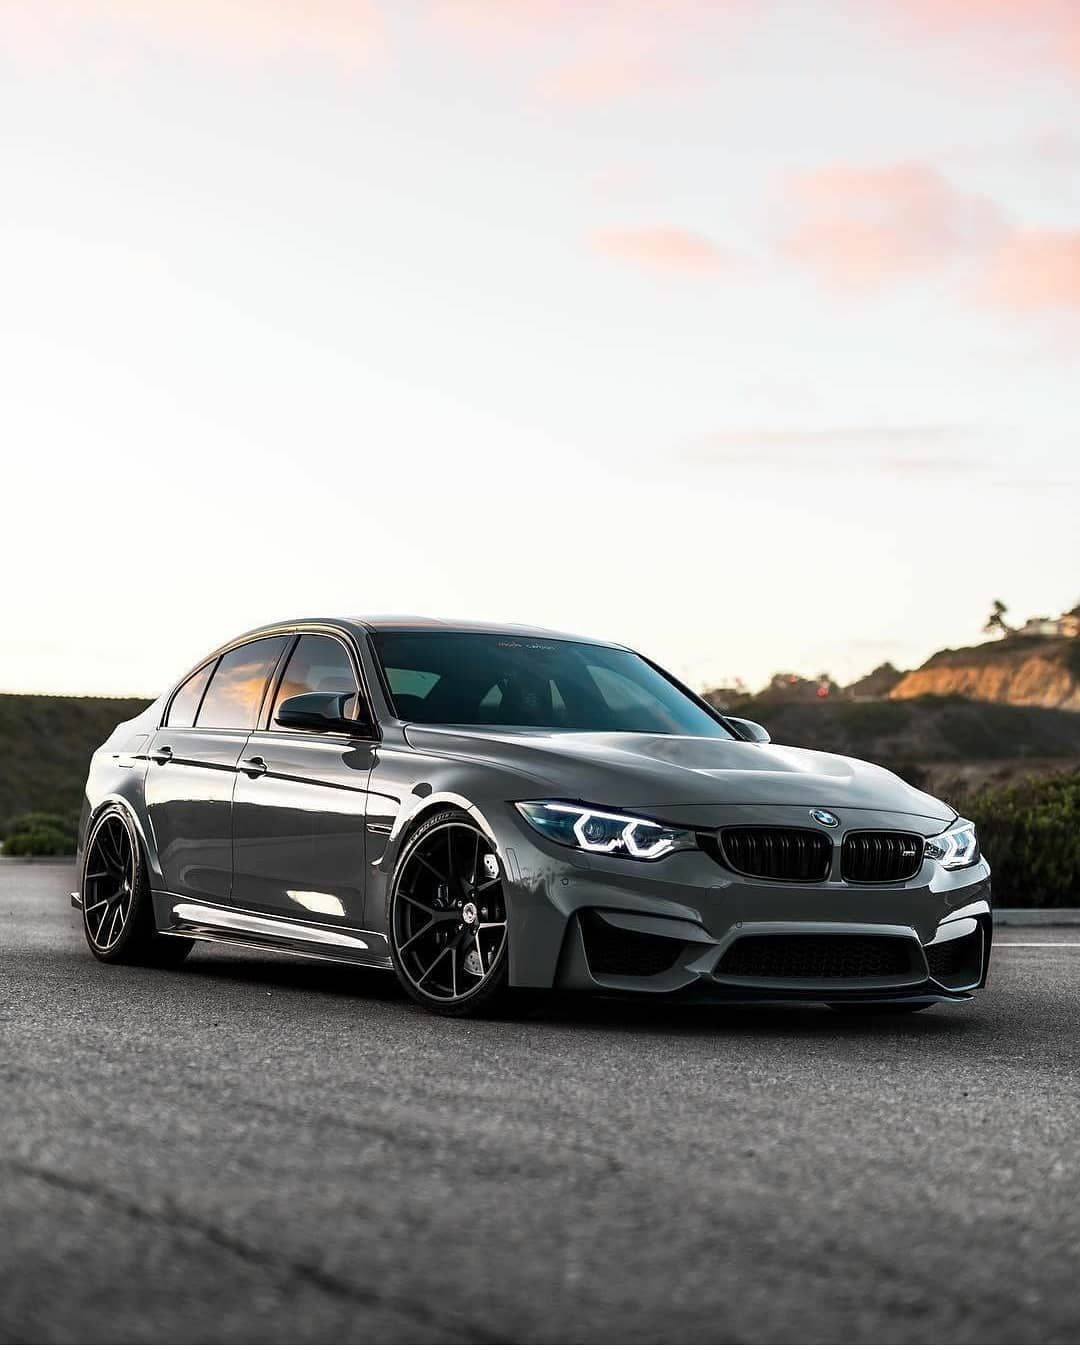 Pin by Erik Heasley on Motor Love (With images) Bmw, Bmw